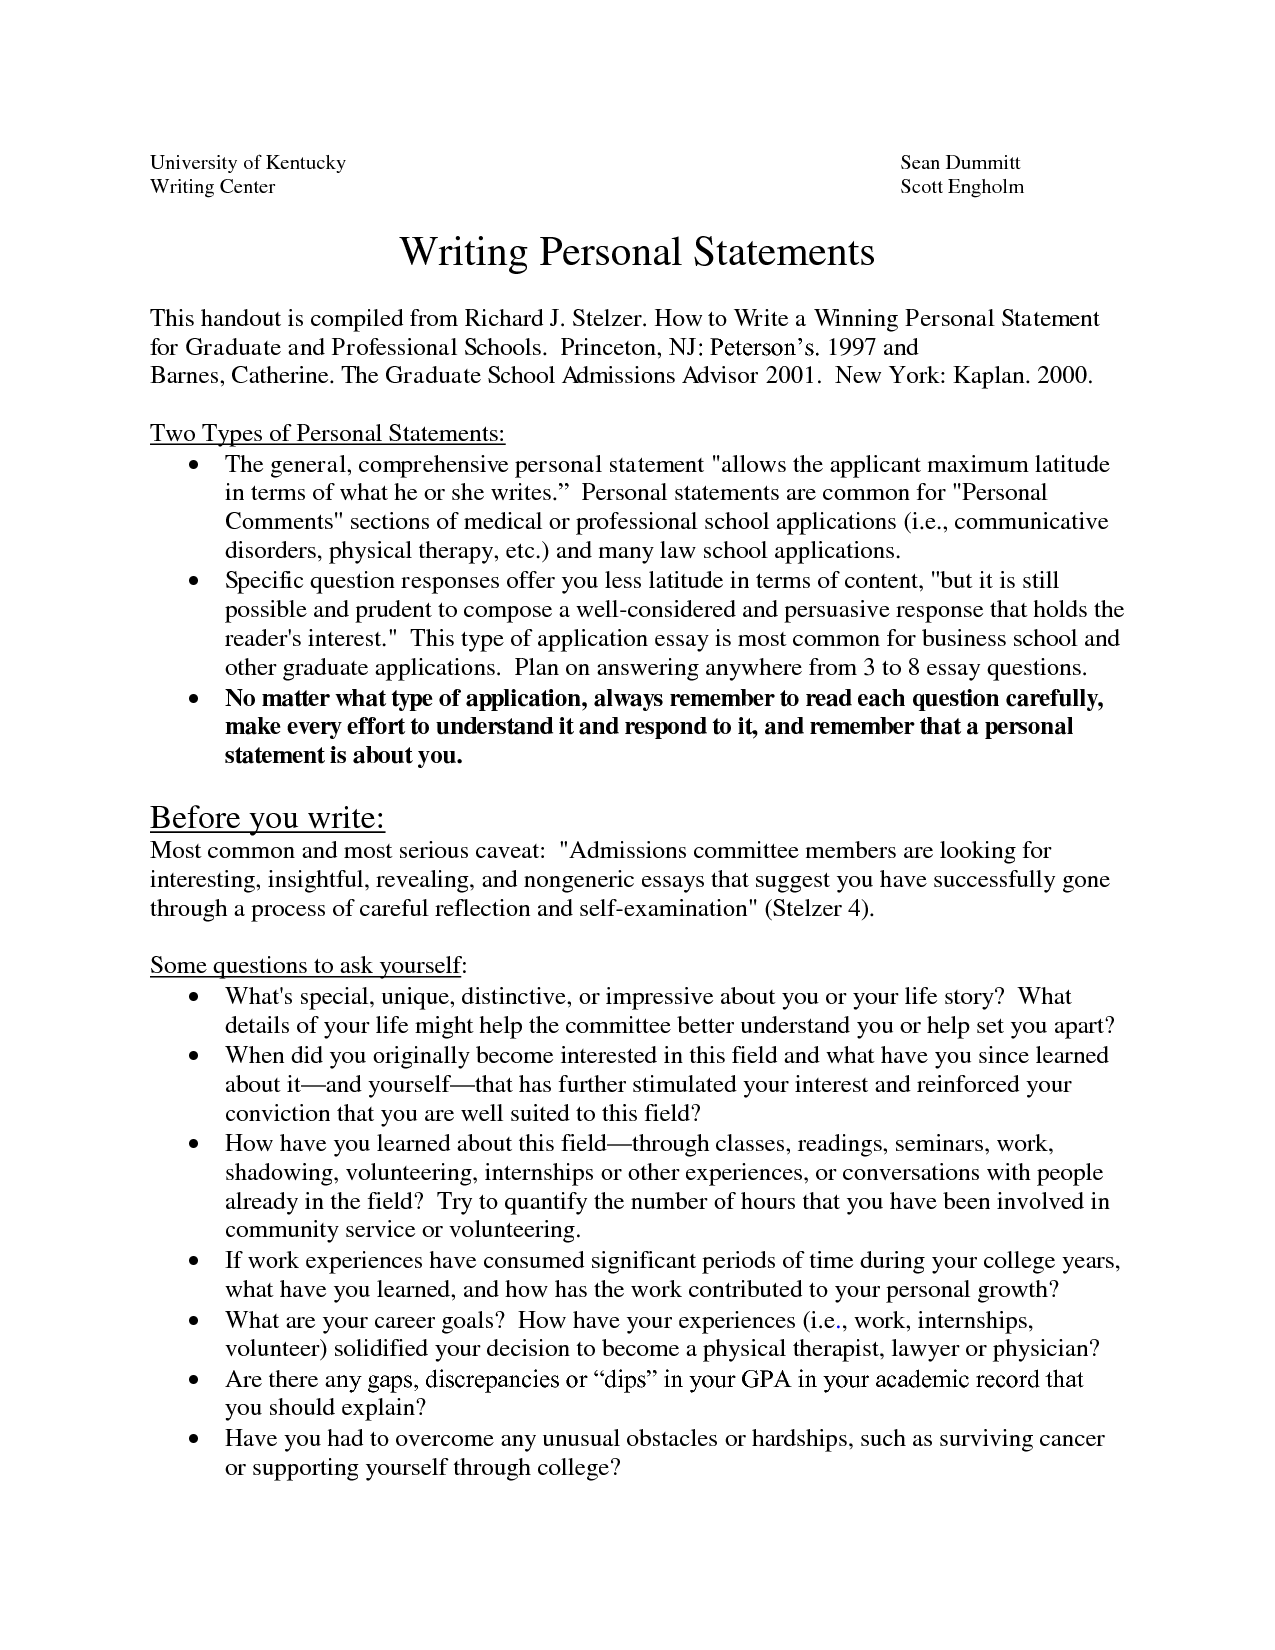 esl cheap essay editing website for masters